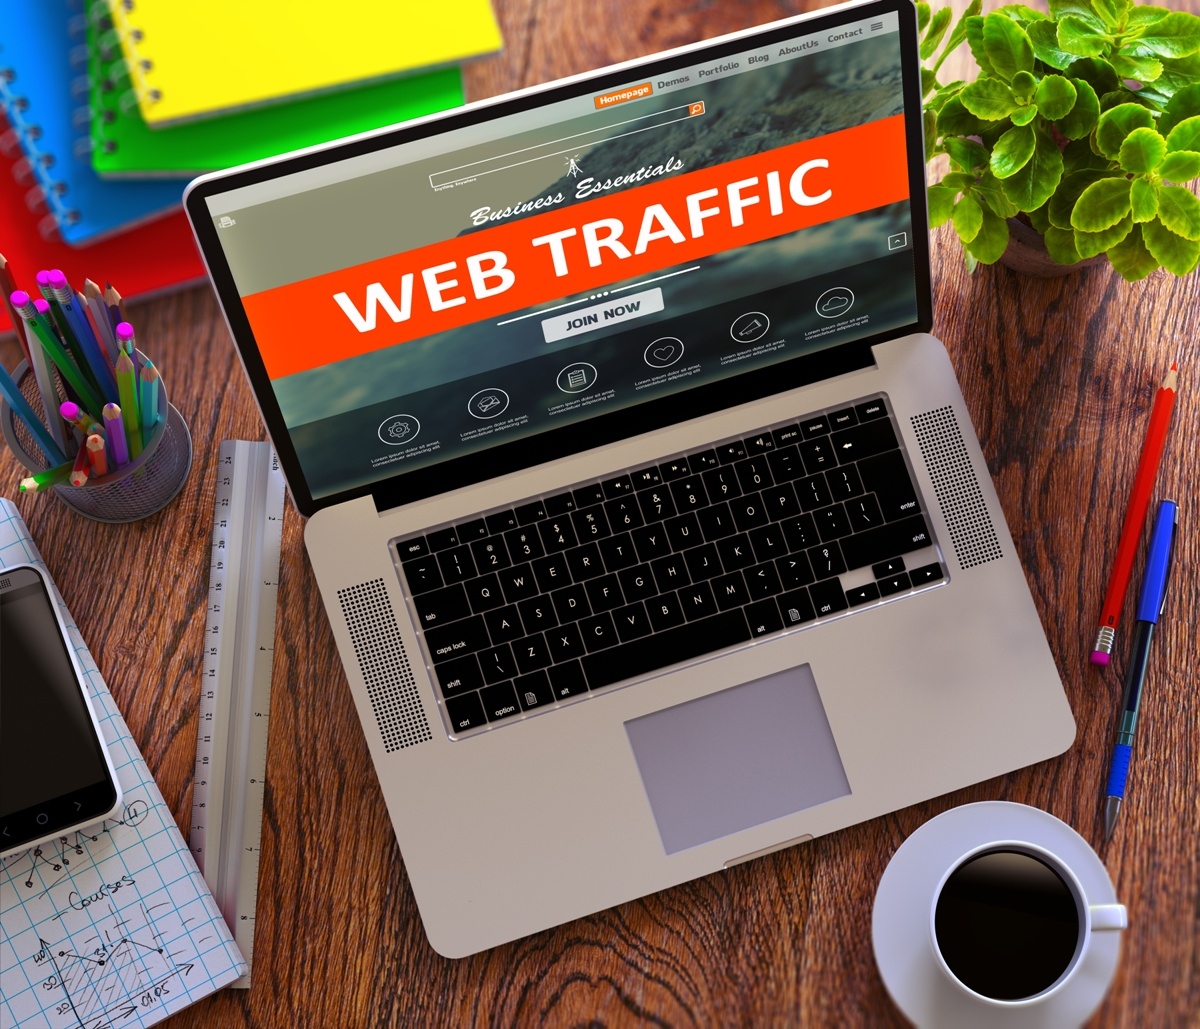 Get Free Web Traffic - Small Online Business Opportunity